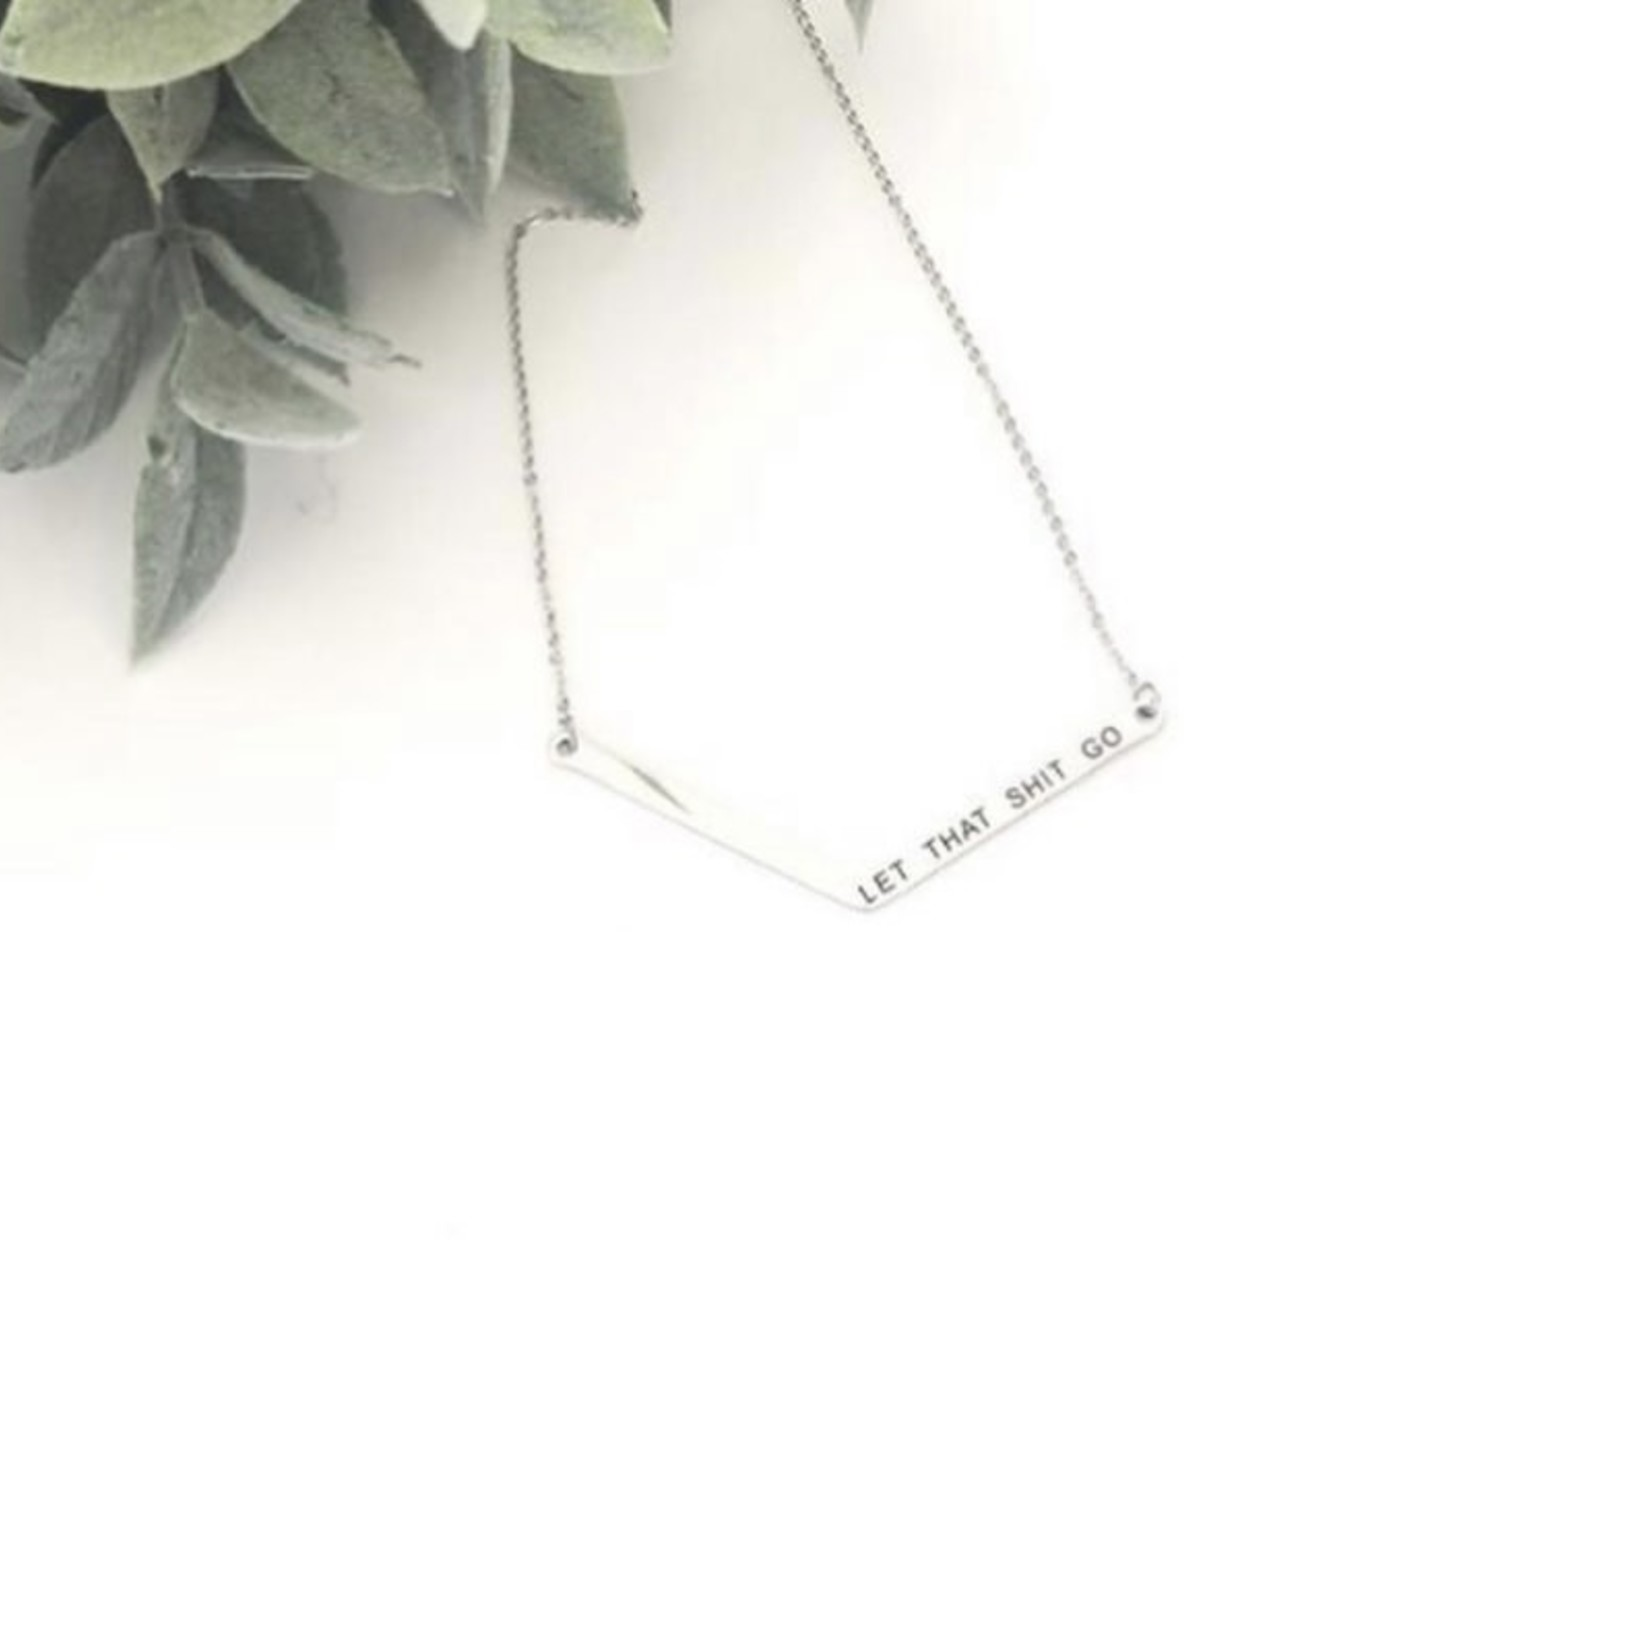 Glass House Goods GHG Necklace